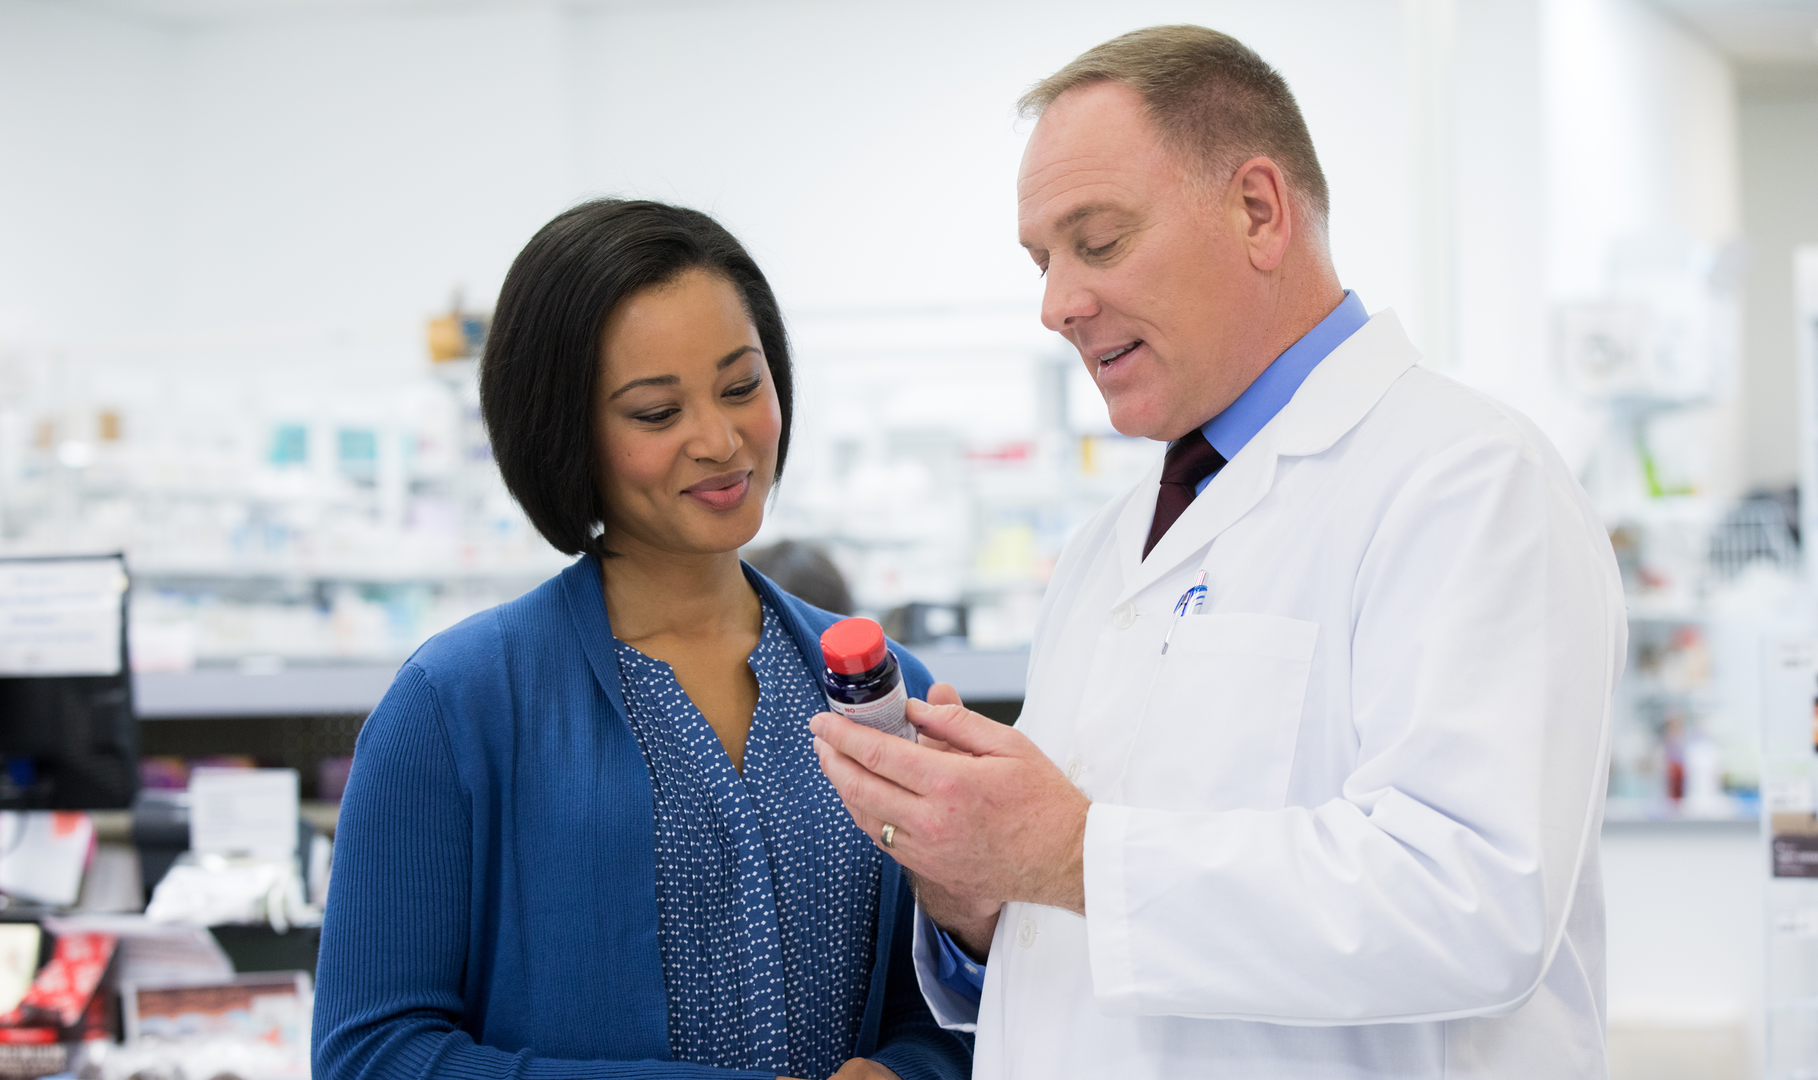 A pharmacist educating a patient on vitamin supplements